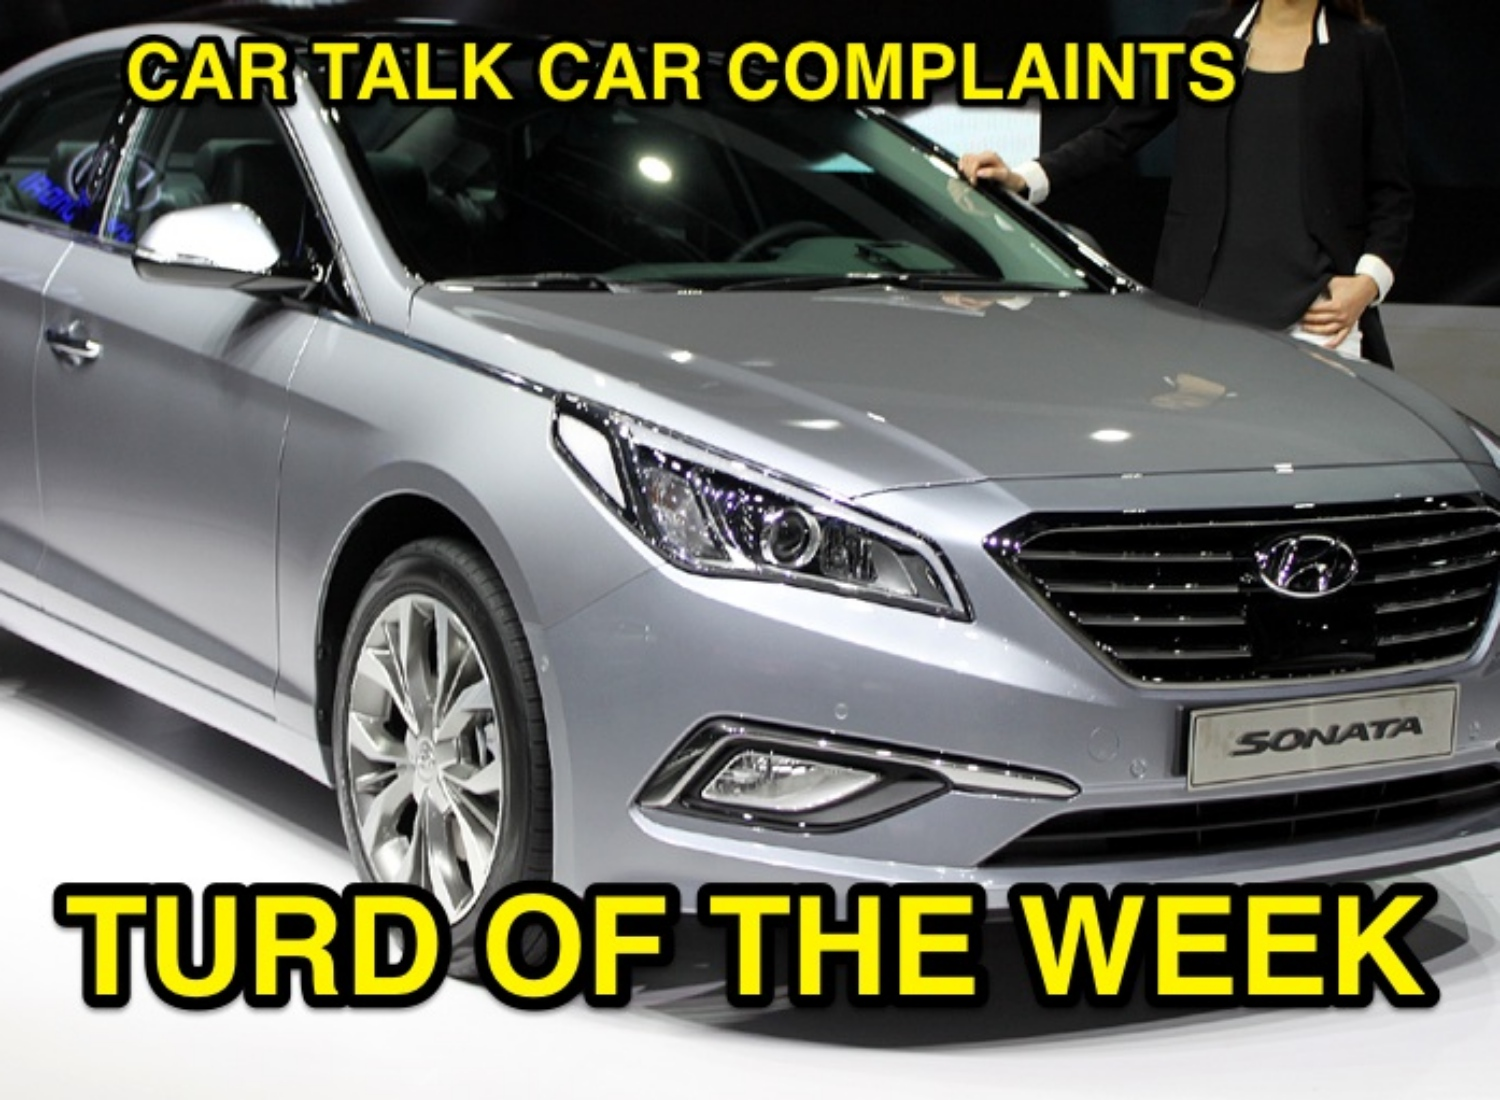 Hyundai Accent noise - Maintenance/Repairs - Car Talk Community